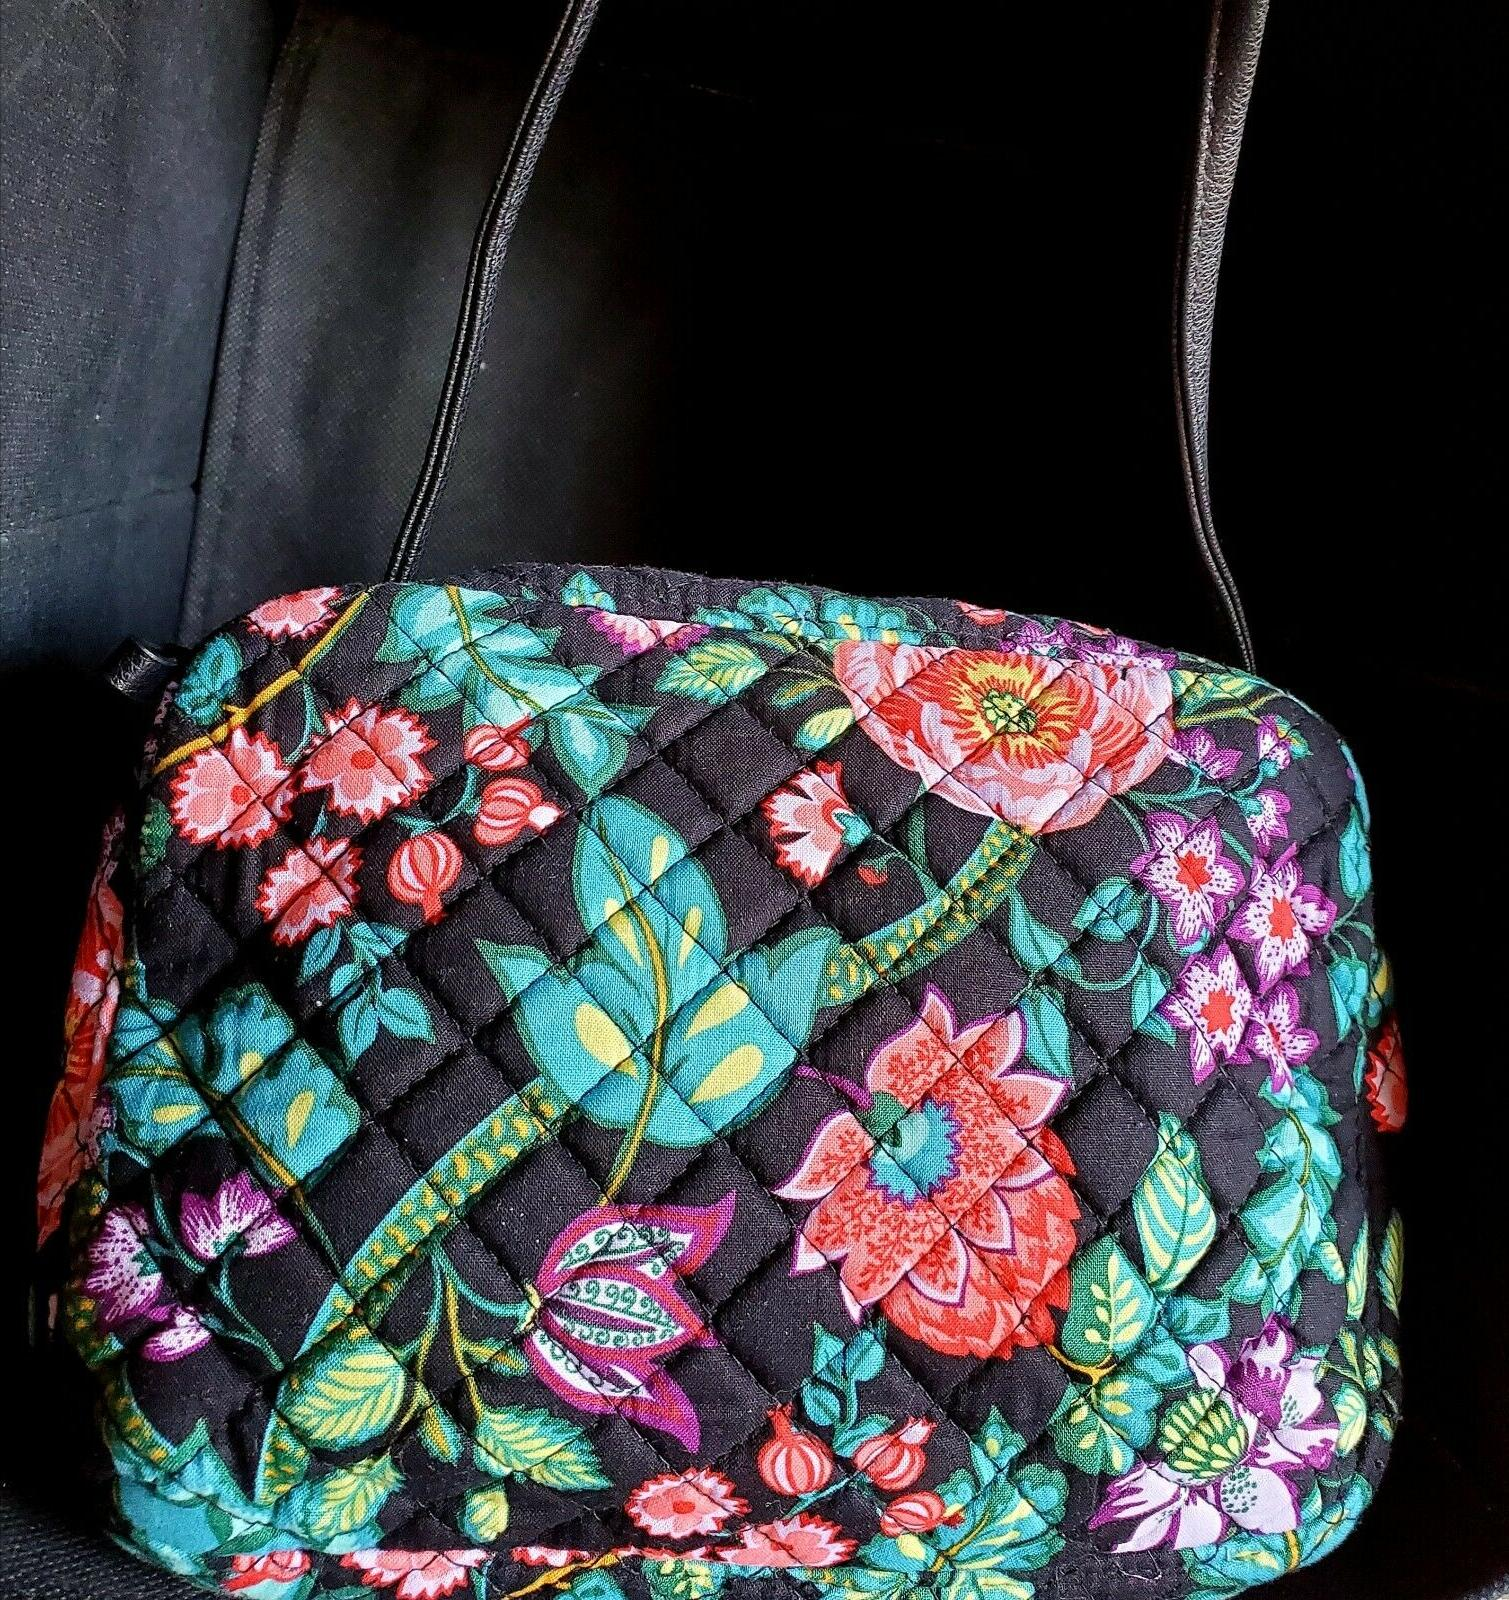 New VERA RFID bag in Floral